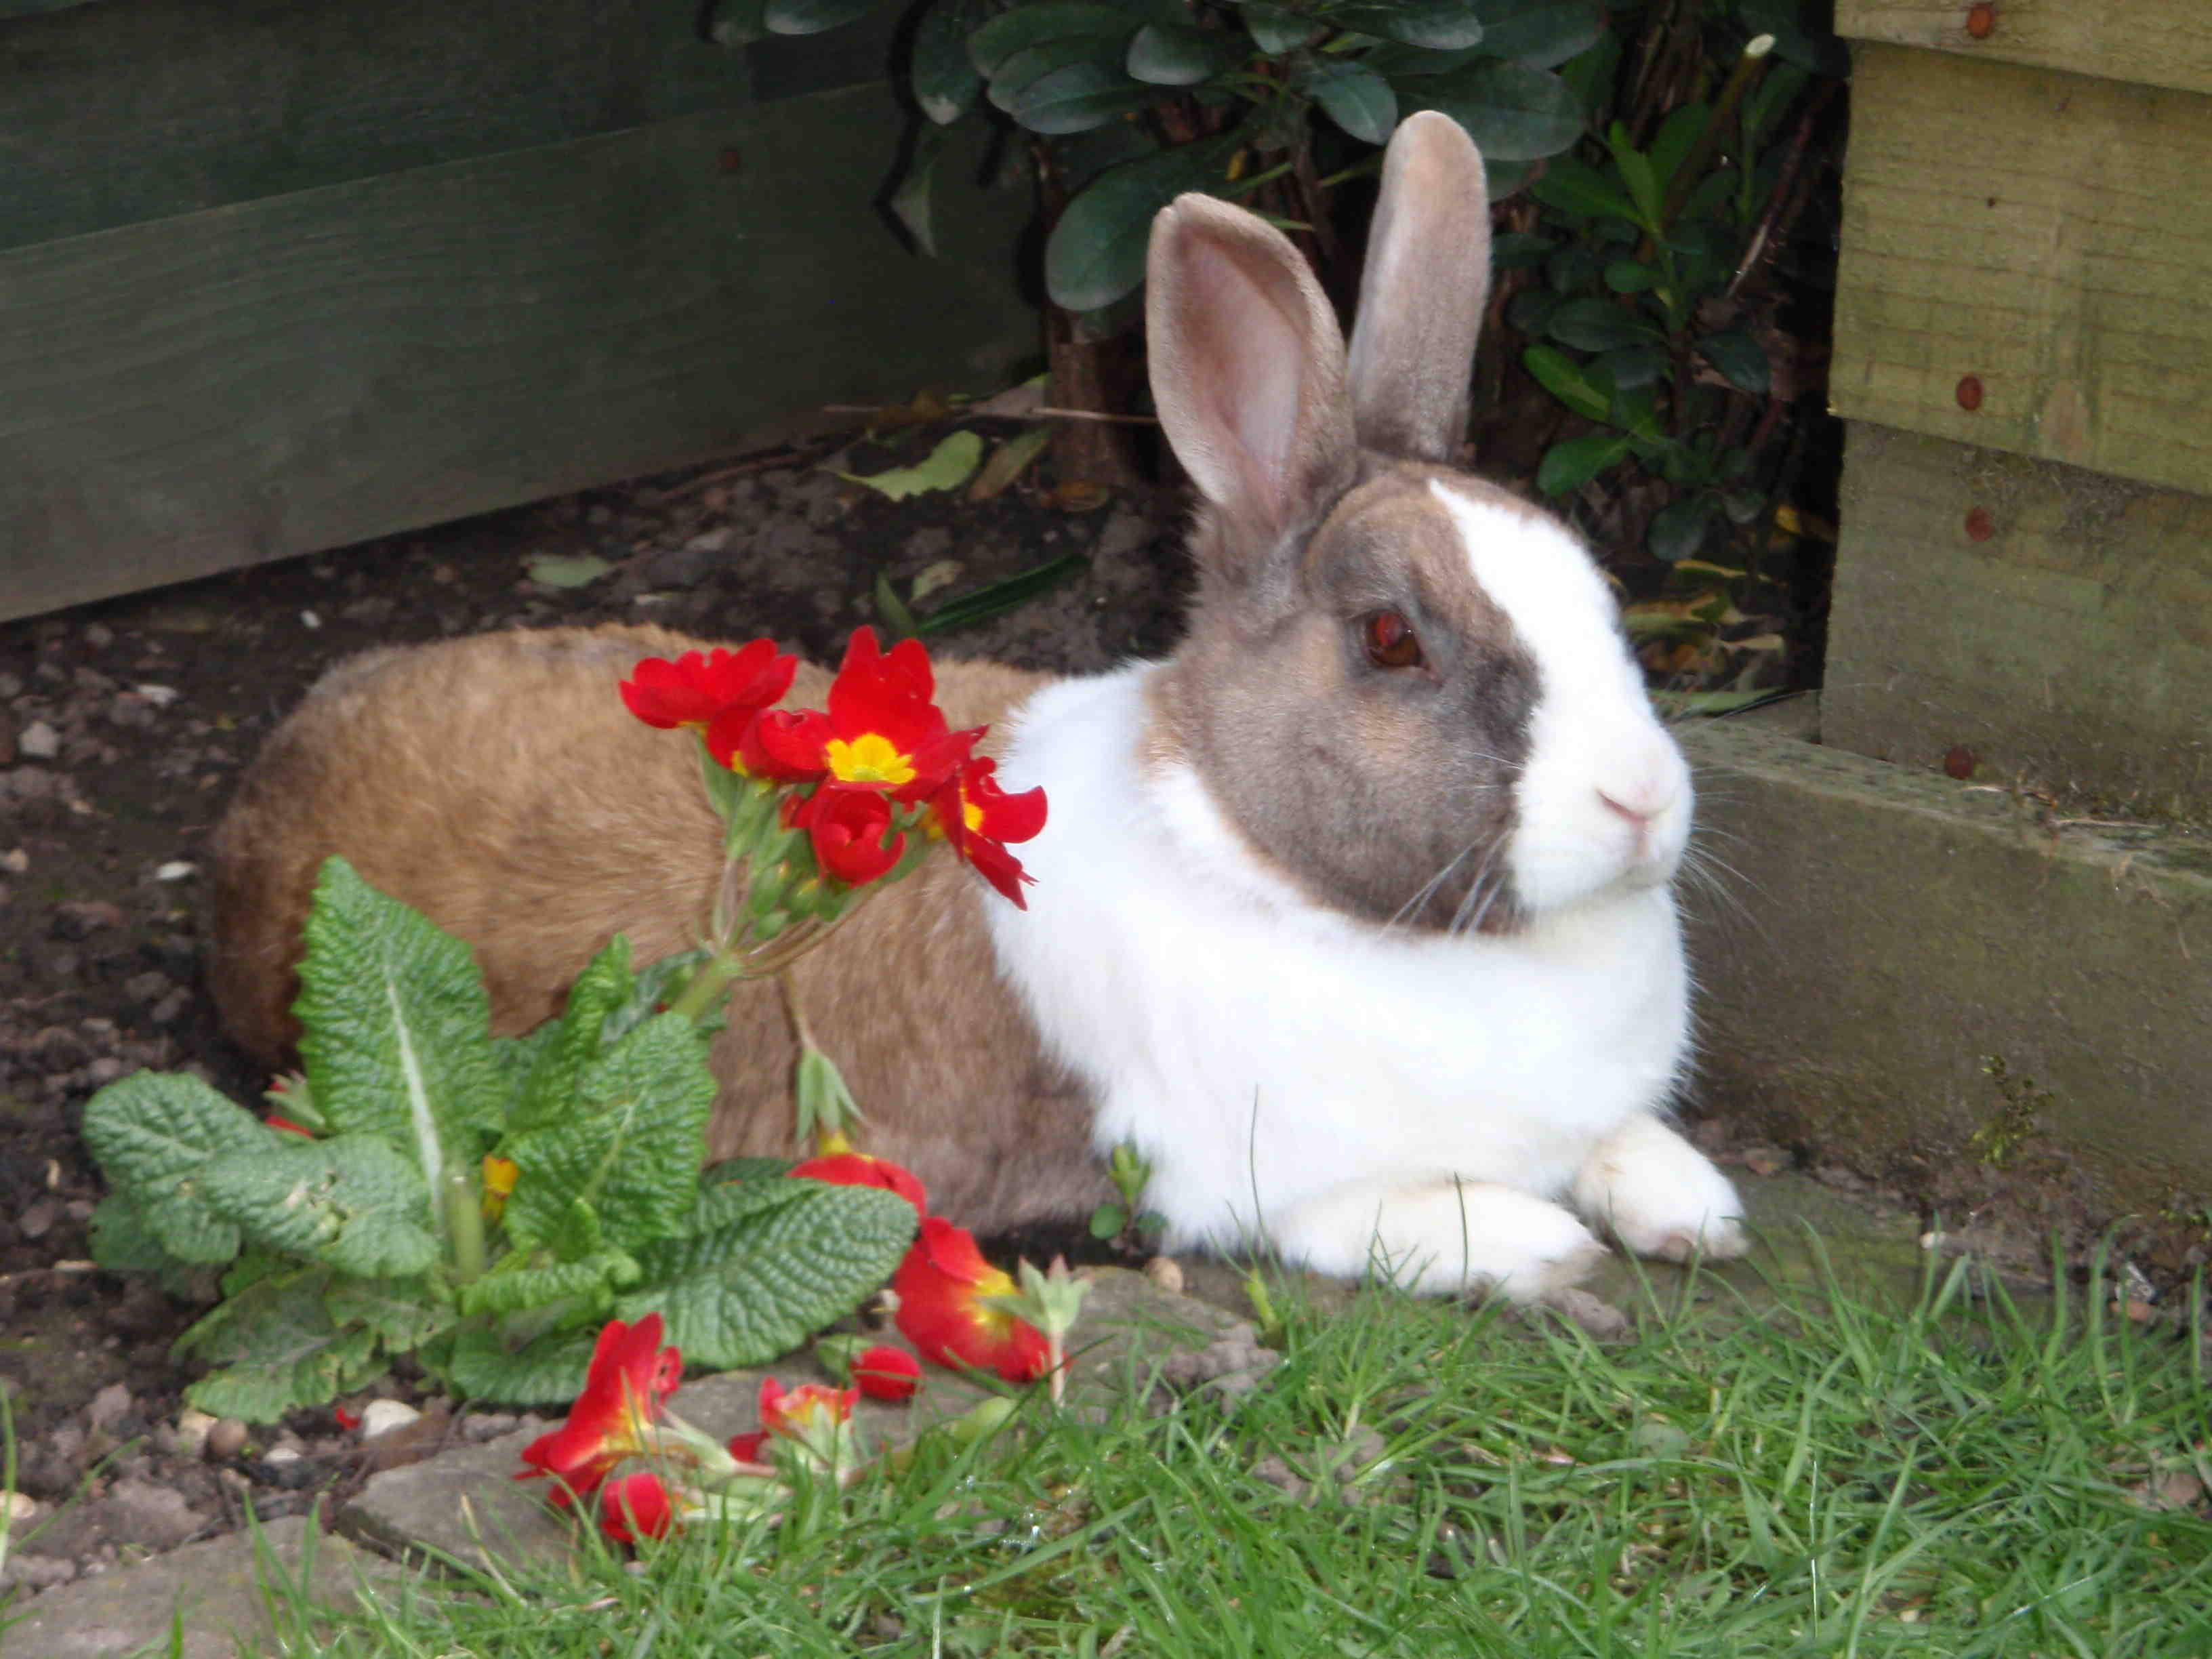 Rabbit sitting next to a red flower